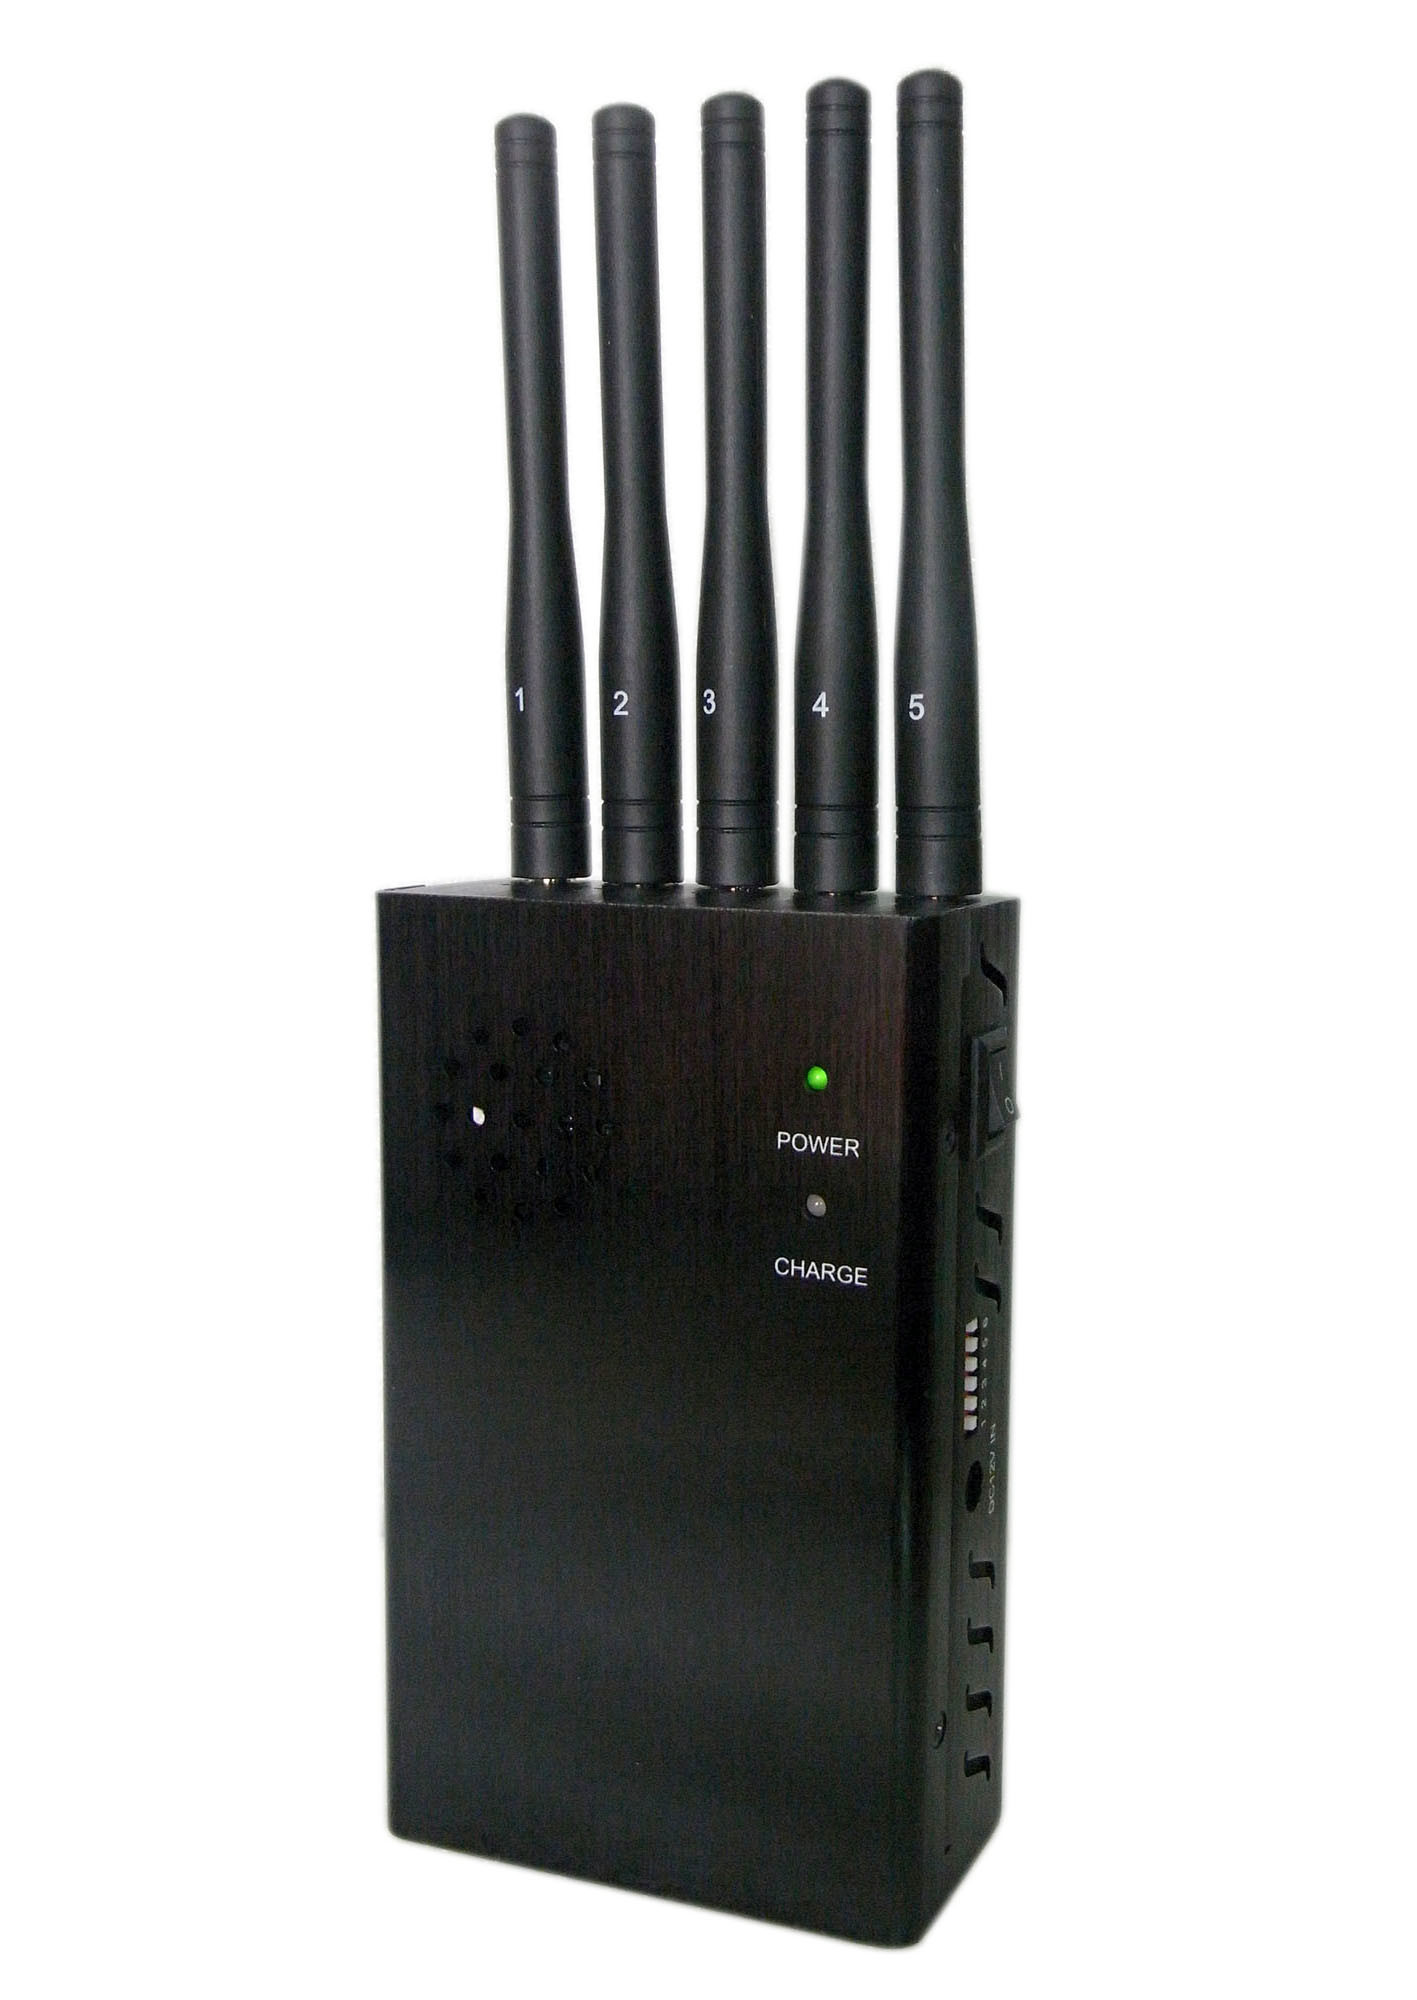 6 Bands RF Radio Jammer